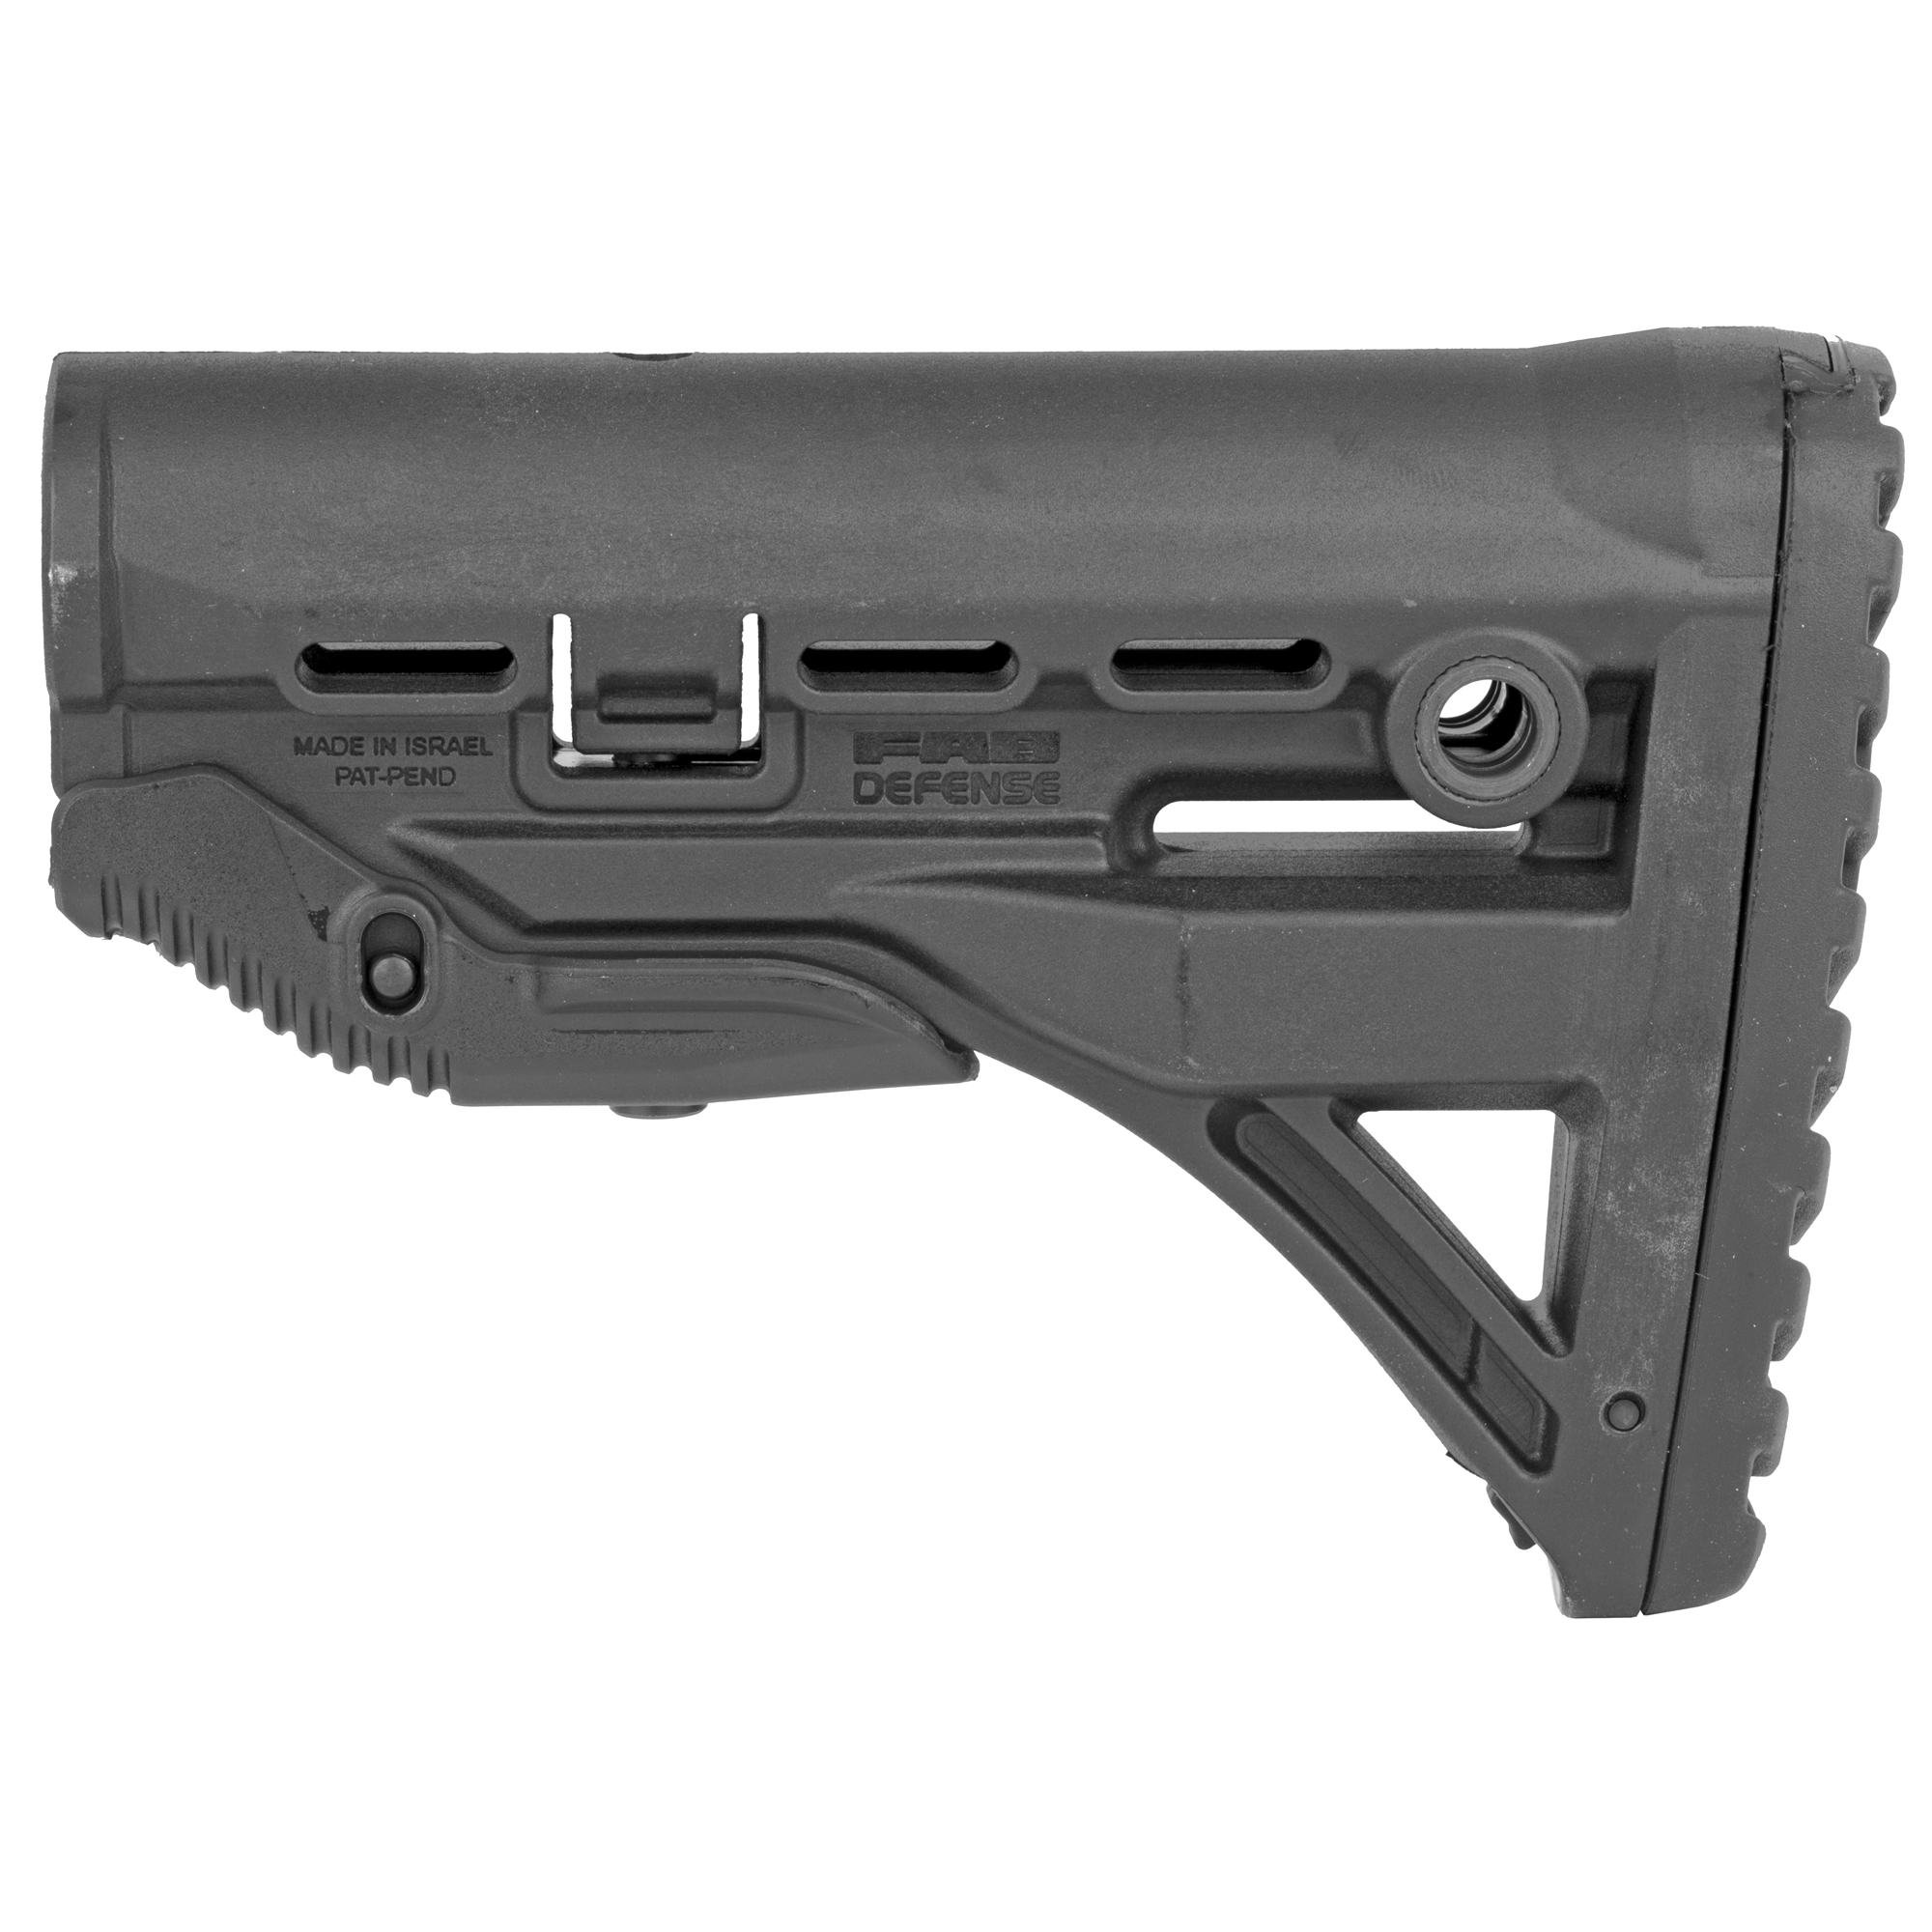 The revolutionary patented 'GL-Shock' absorbing Buttstock contains a recoil-reducing mechanism with a built in premium silicon chrome alloy spring creating a State-of-the-Art stock for your M4/M16.